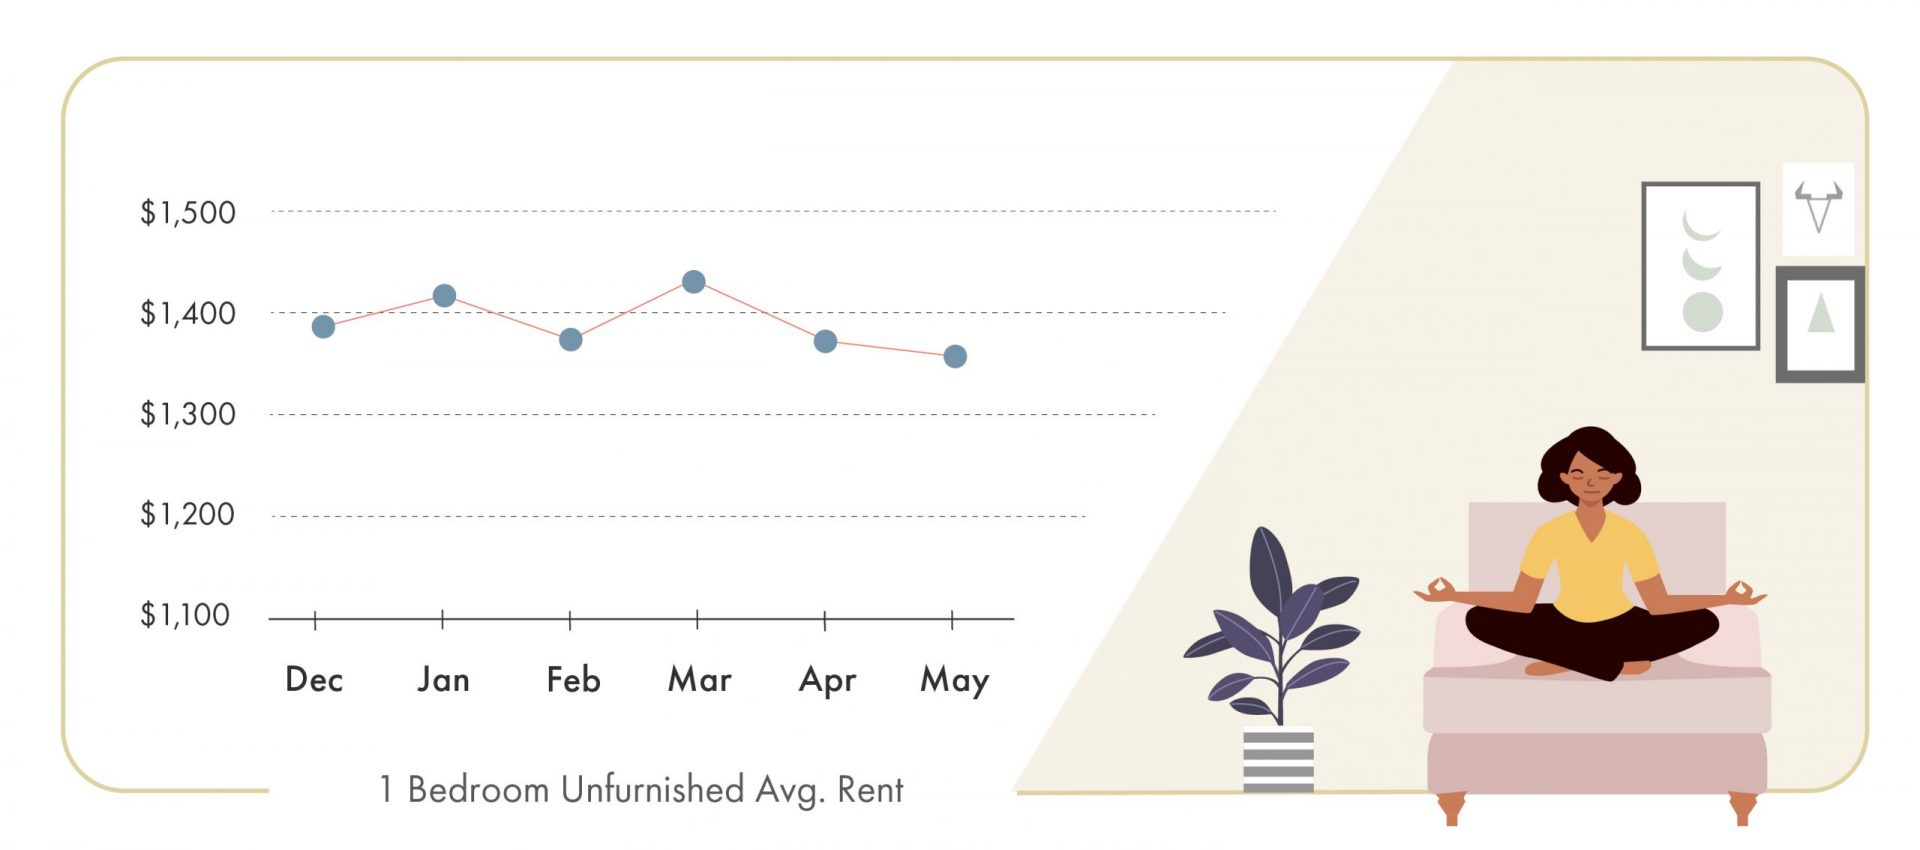 May 2020 Montreal Rent Report, May 2020 Montreal rent prices